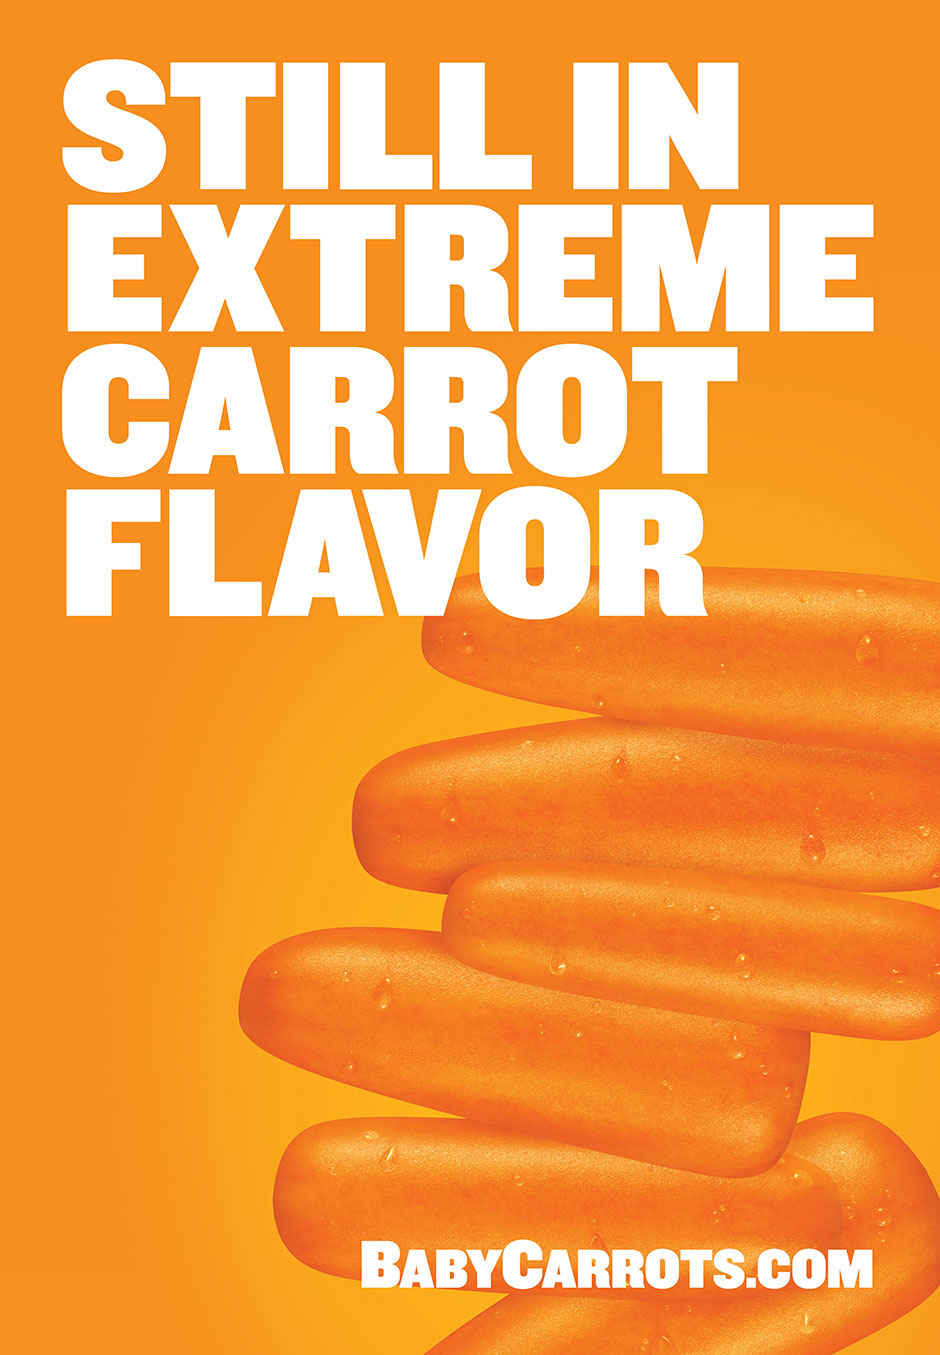 bolt-print-extreme-carrot-flavor